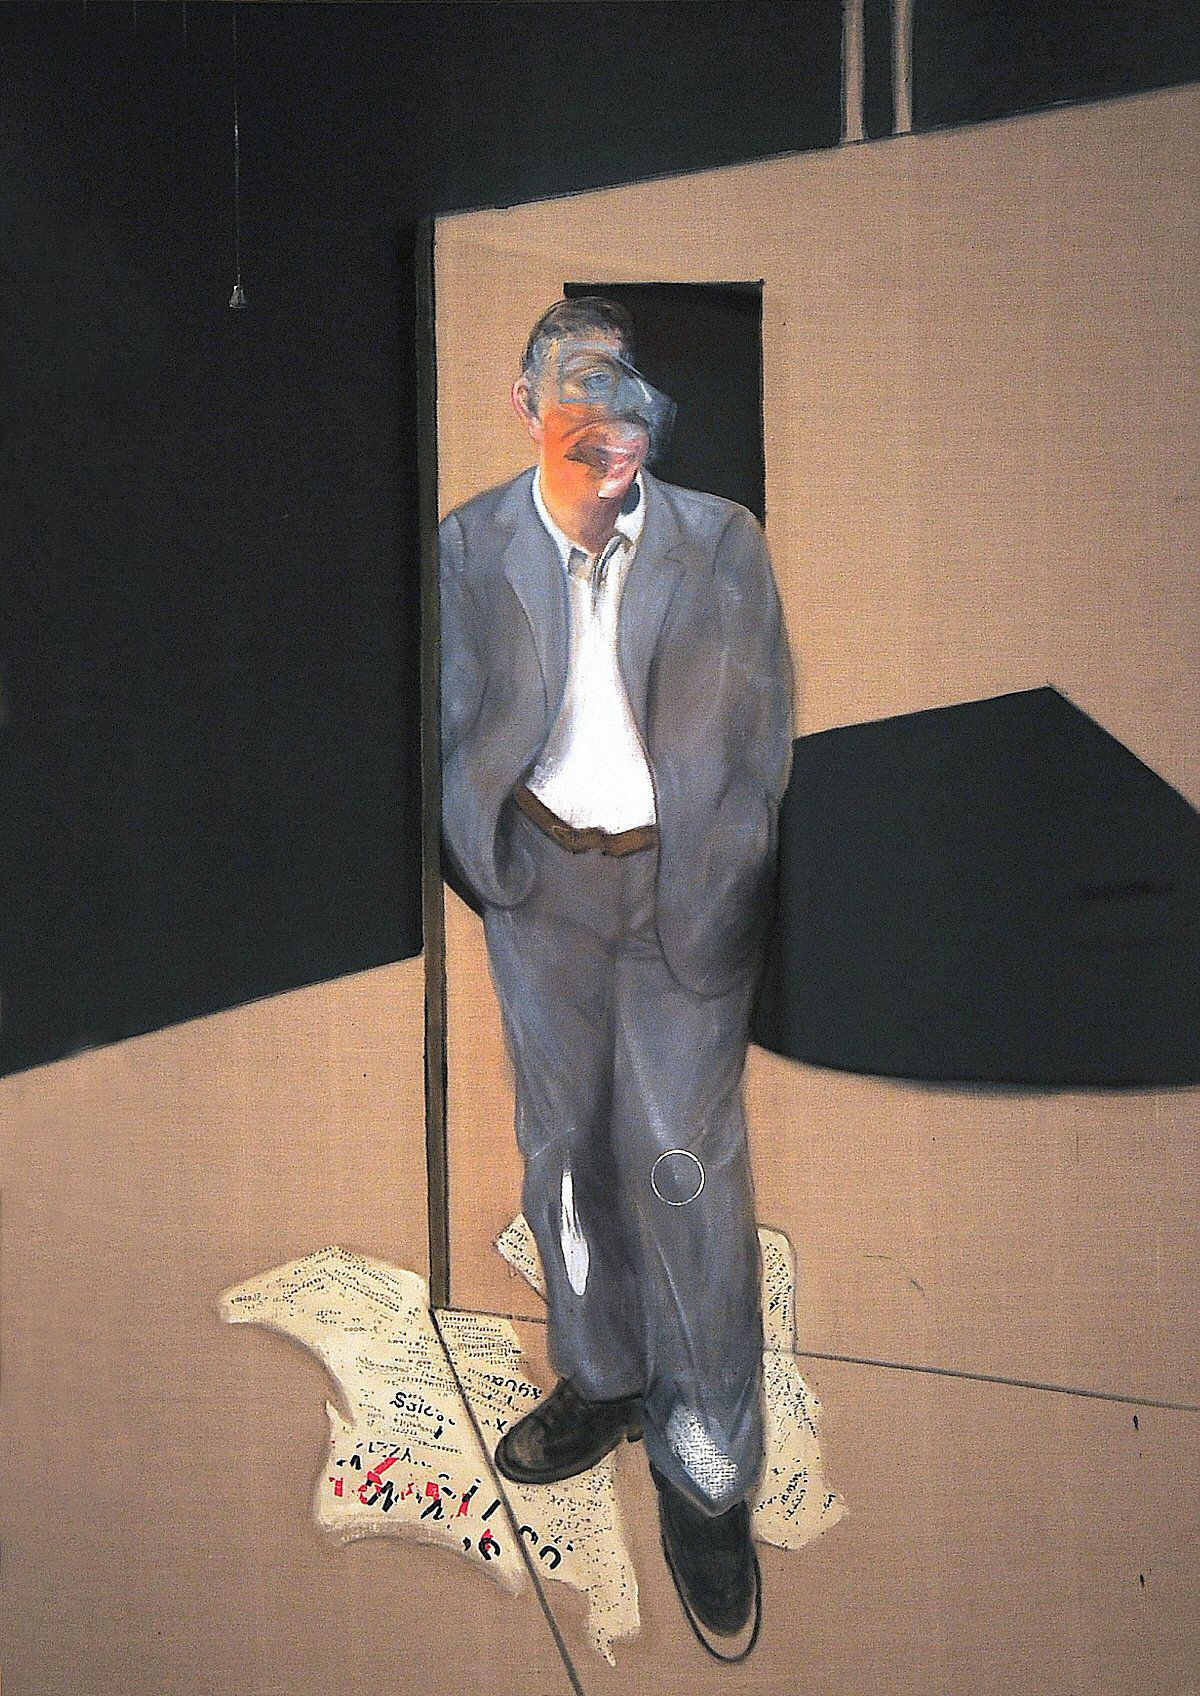 uncleheinerich:   Francis Bacon, Study of a Man Talking, 1981. Oil on canvas